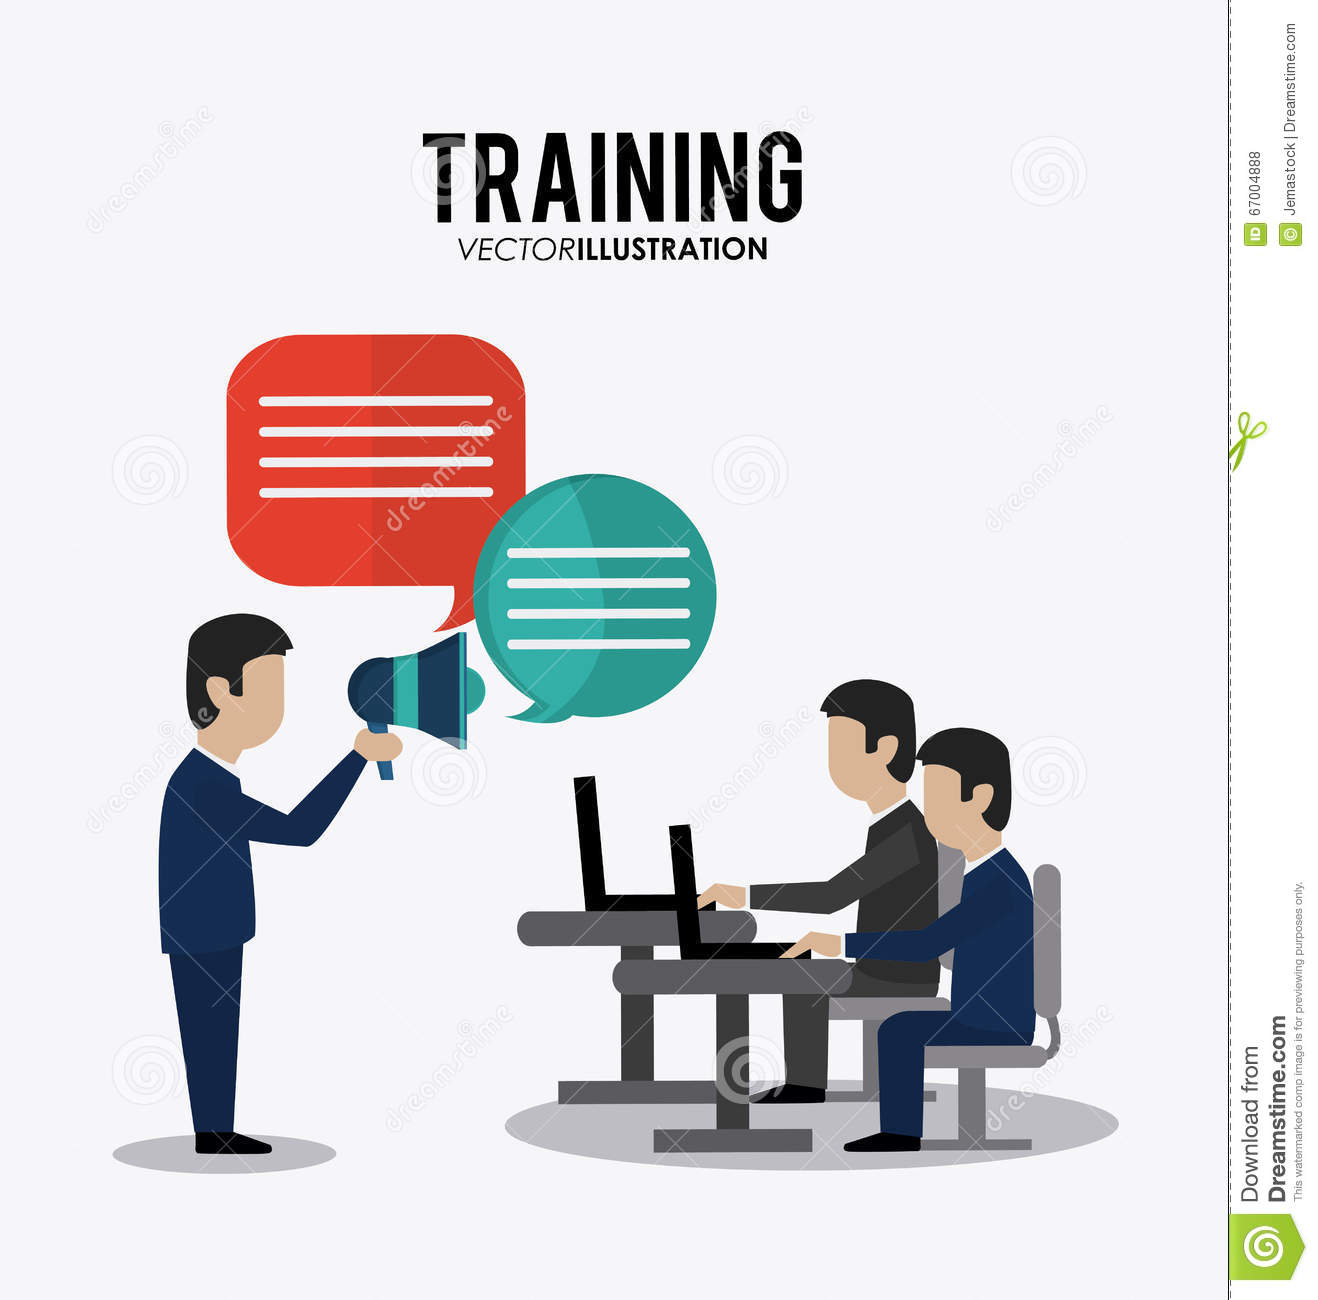 Training Icon Design Stock Vector - Image: 67004888